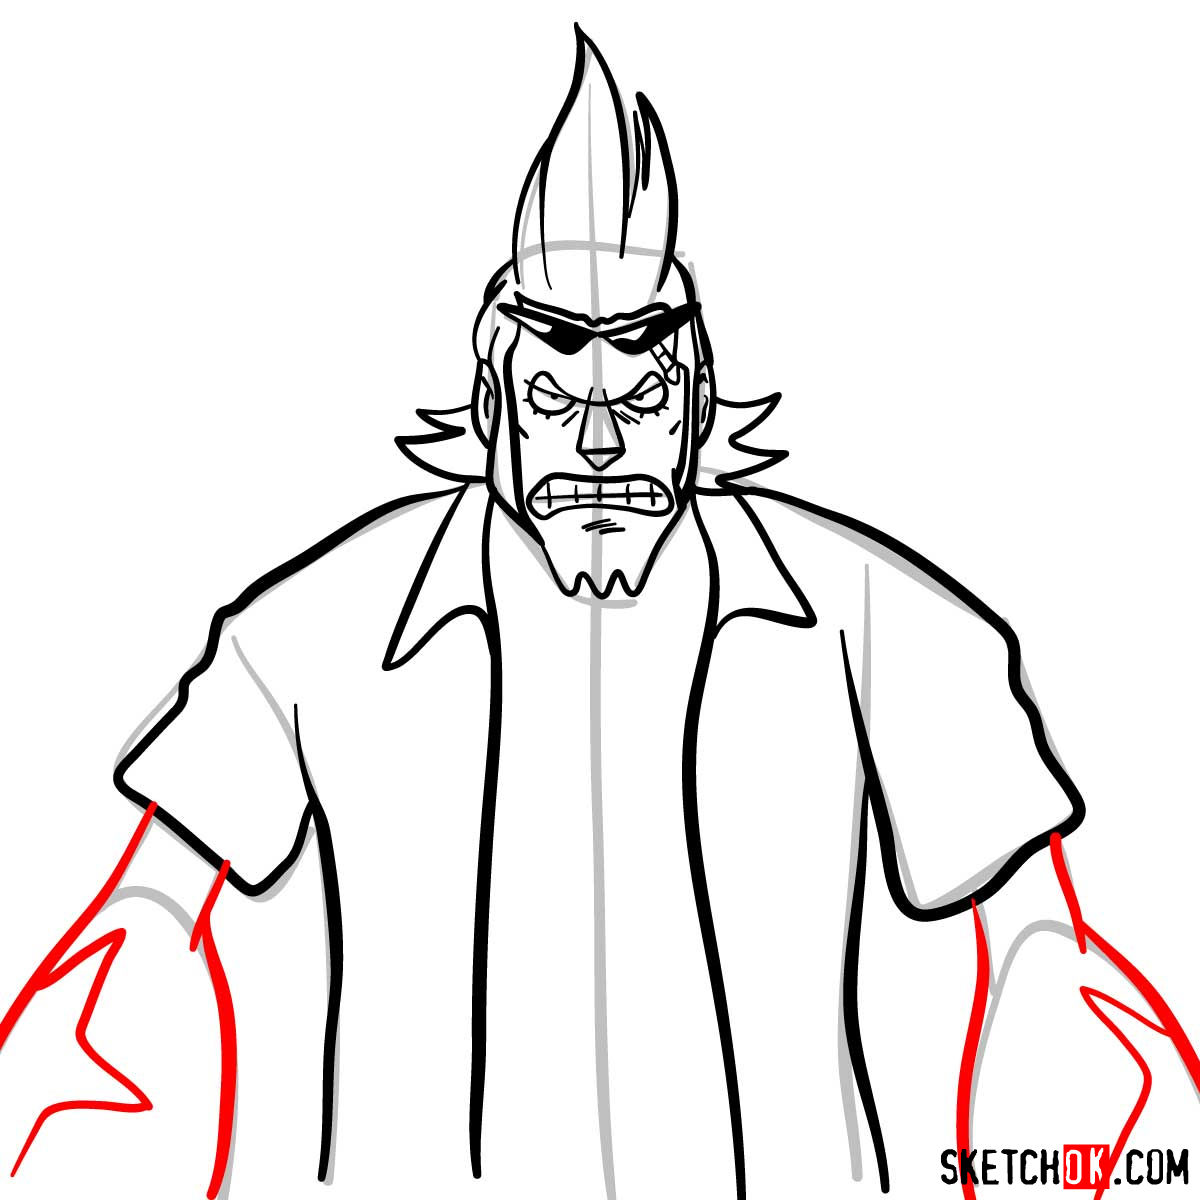 How to draw Franky from One Piece anime - step 09